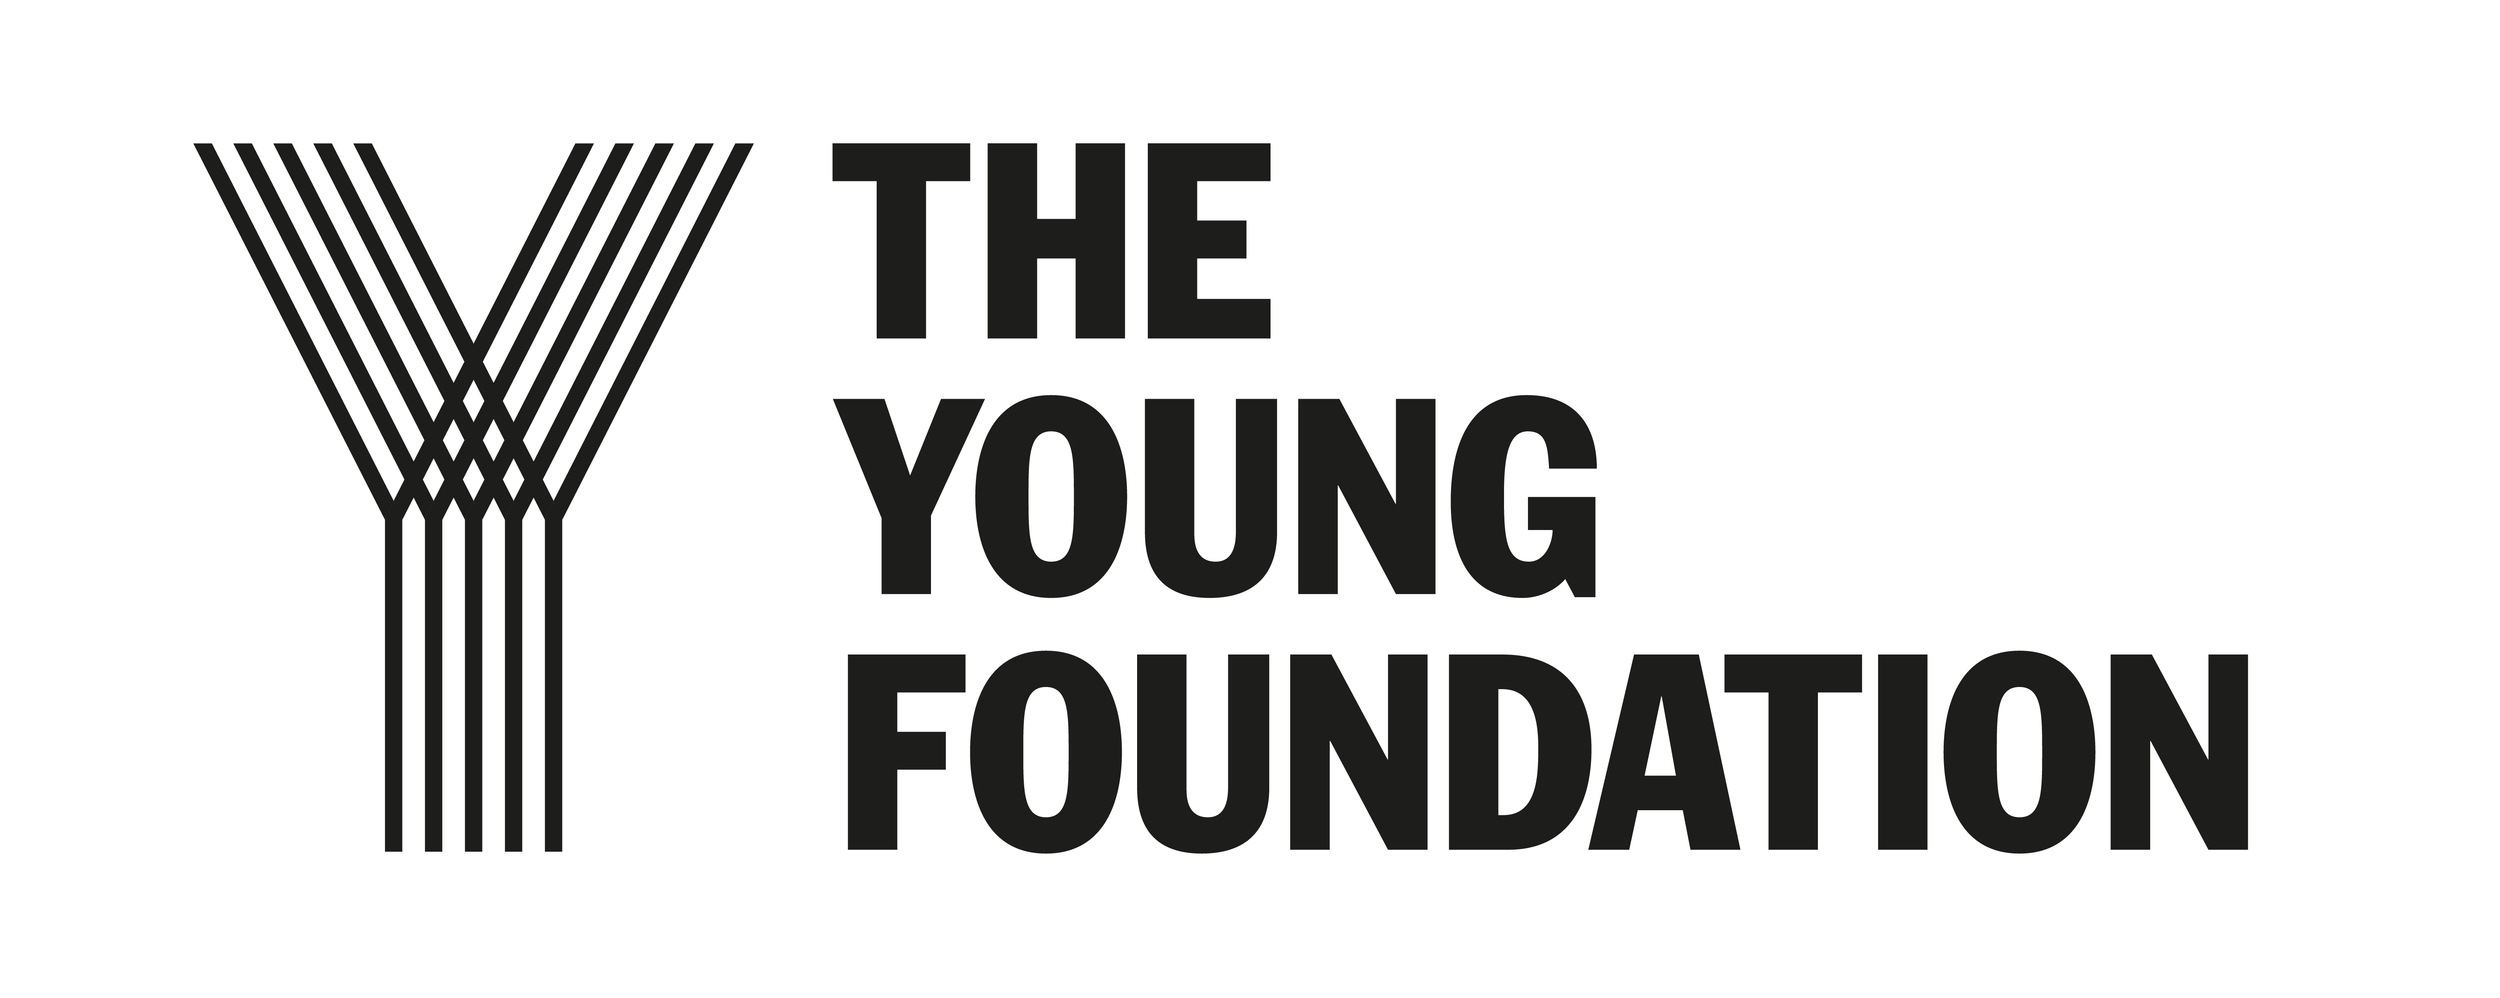 The-Young-Foundation.jpg